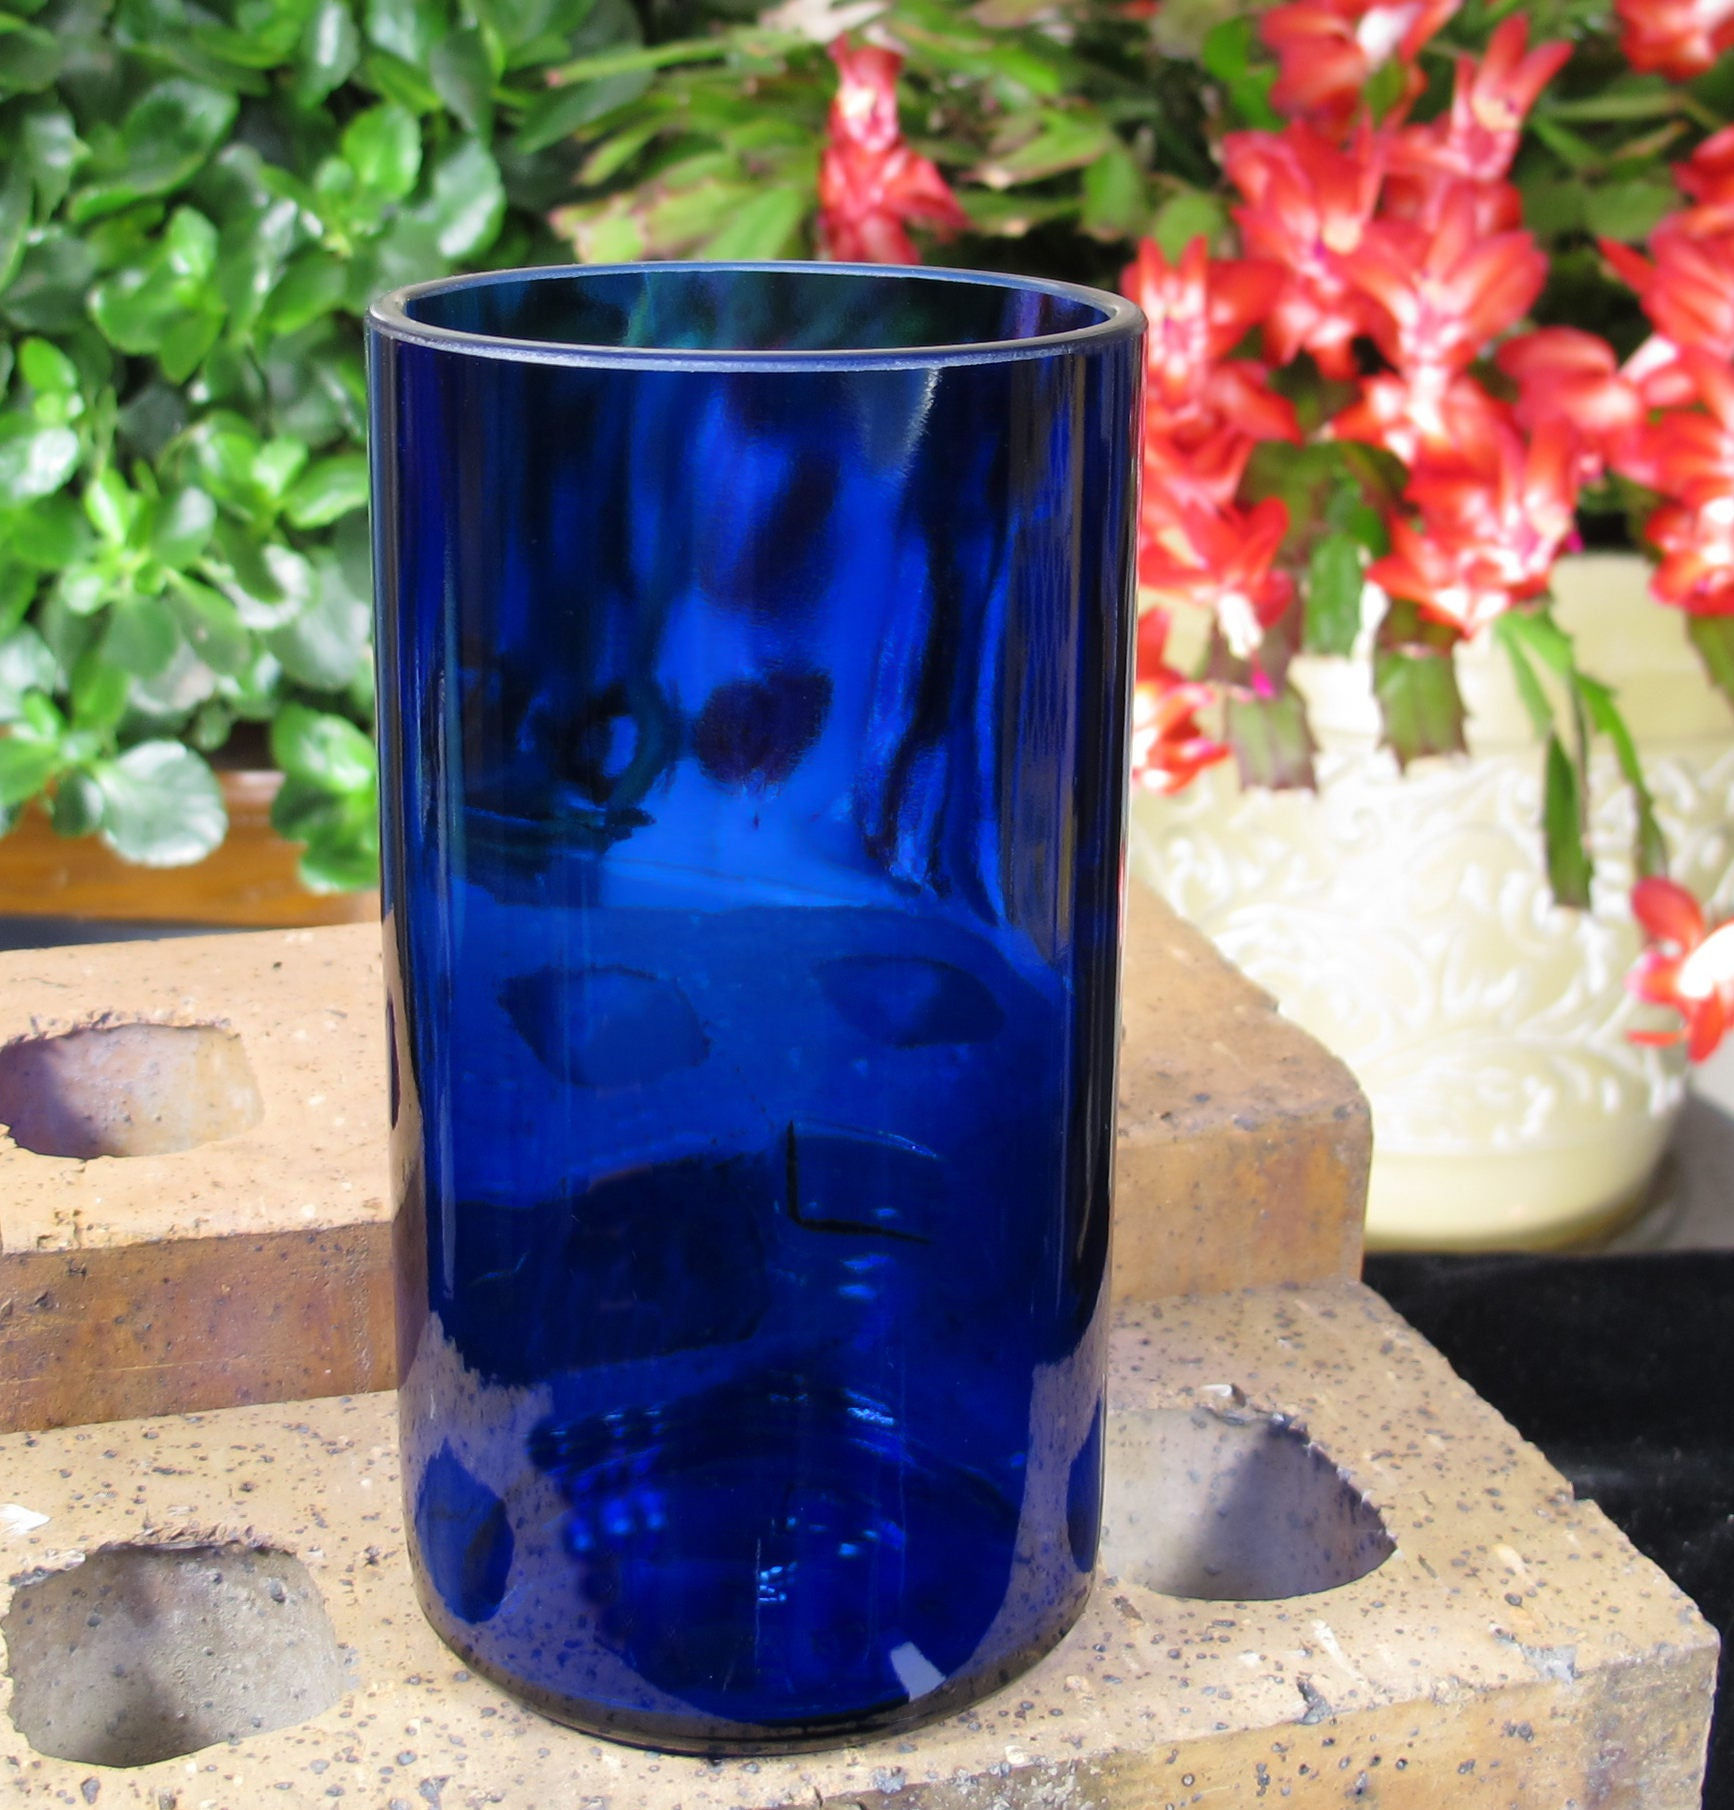 Skinny Tumbler Skyy Vodka Booze Gift Idea 21st Birthday Blue Glass Drinkware Cousin Dad Xmas Presents Cool Wedding